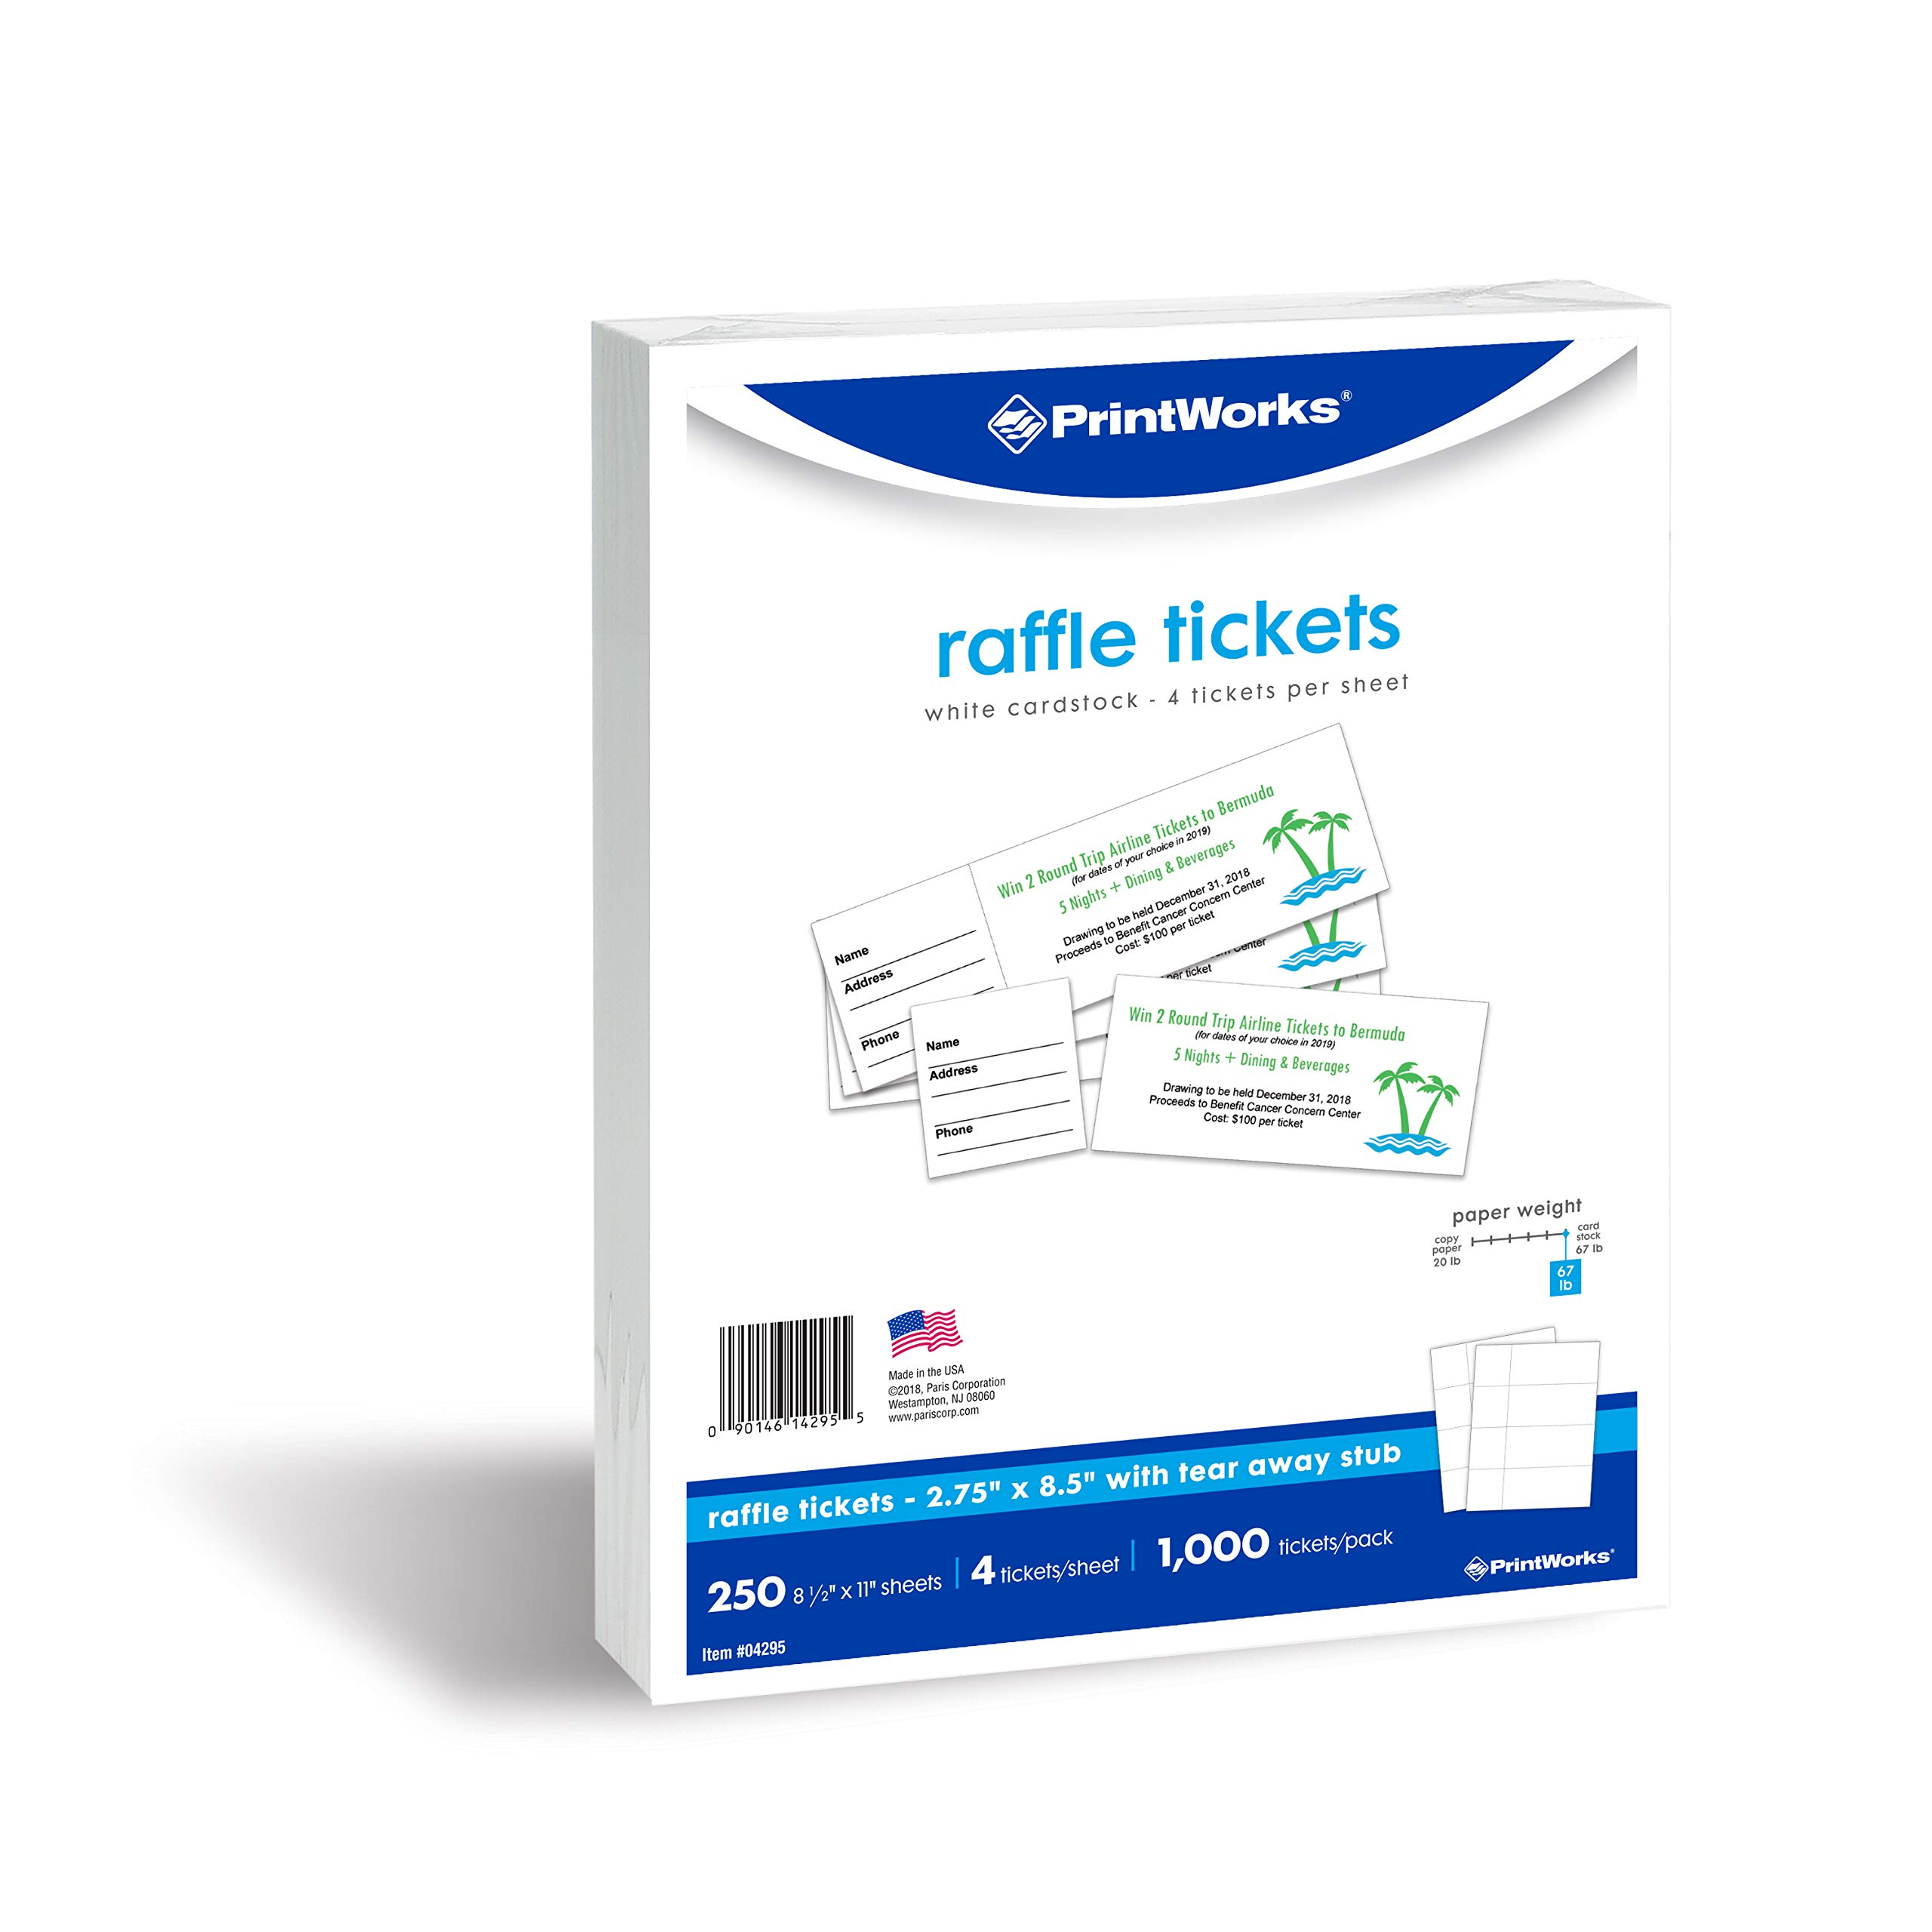 PrintWorks Heavyweight Perforated Cardstock for Raffle Tickets, Coupons, and More, Tear-Away Stubs, 8.5 x 11, 67 lb, 4 Tickets Per Sheet, 250 Sheets, 1000 Tickets Total, White (04295) (2.75 x 8.5)